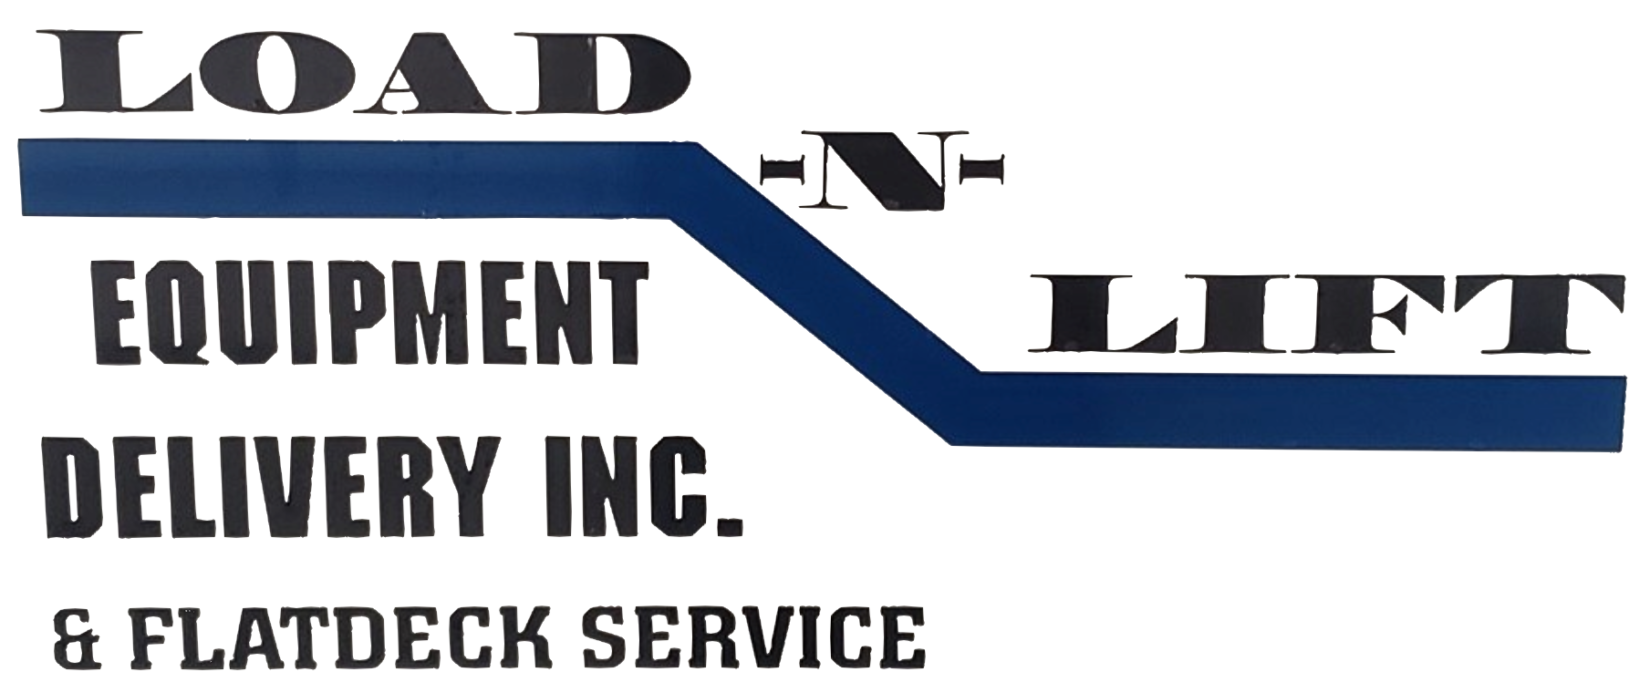 Load-n-Lift Equipment Delivery Inc.